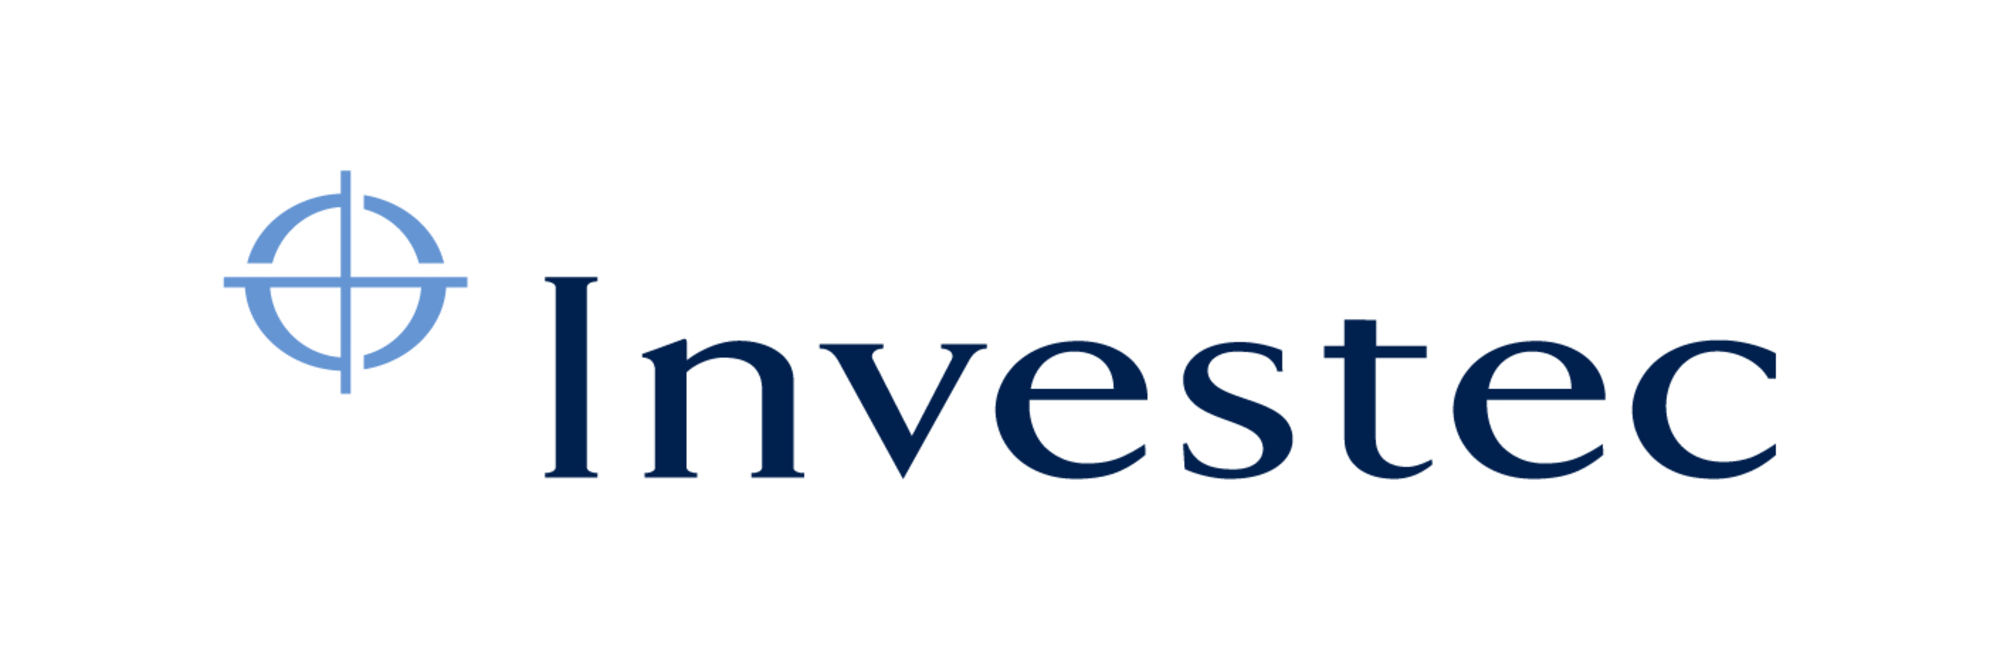 investec-20x20-awards-media-women-sports-cantseecantbe-showyourstripes-womeninsport